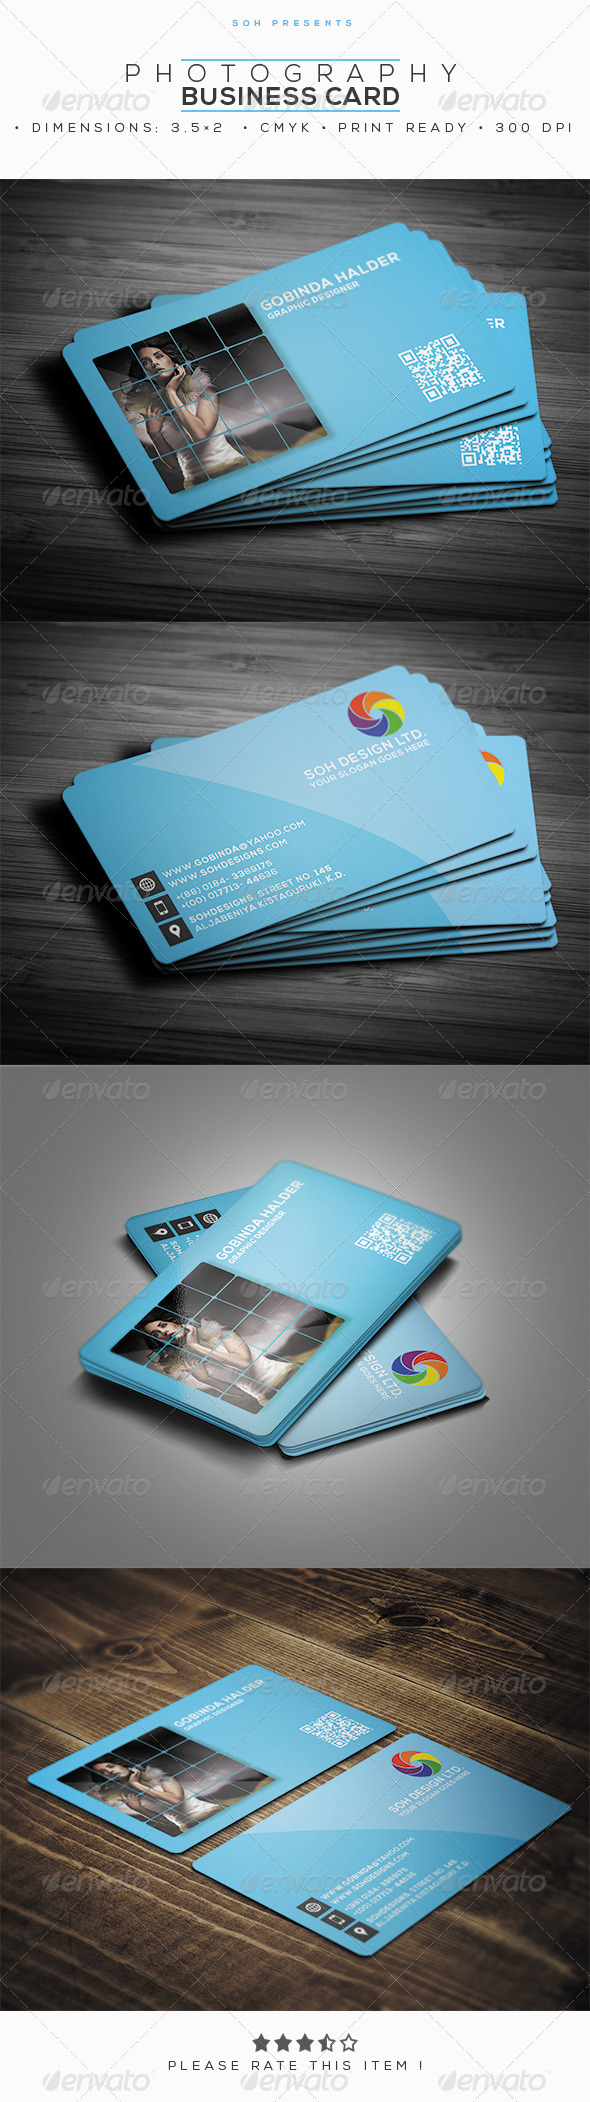 GraphicRiver Photography Business Card Template 8245525